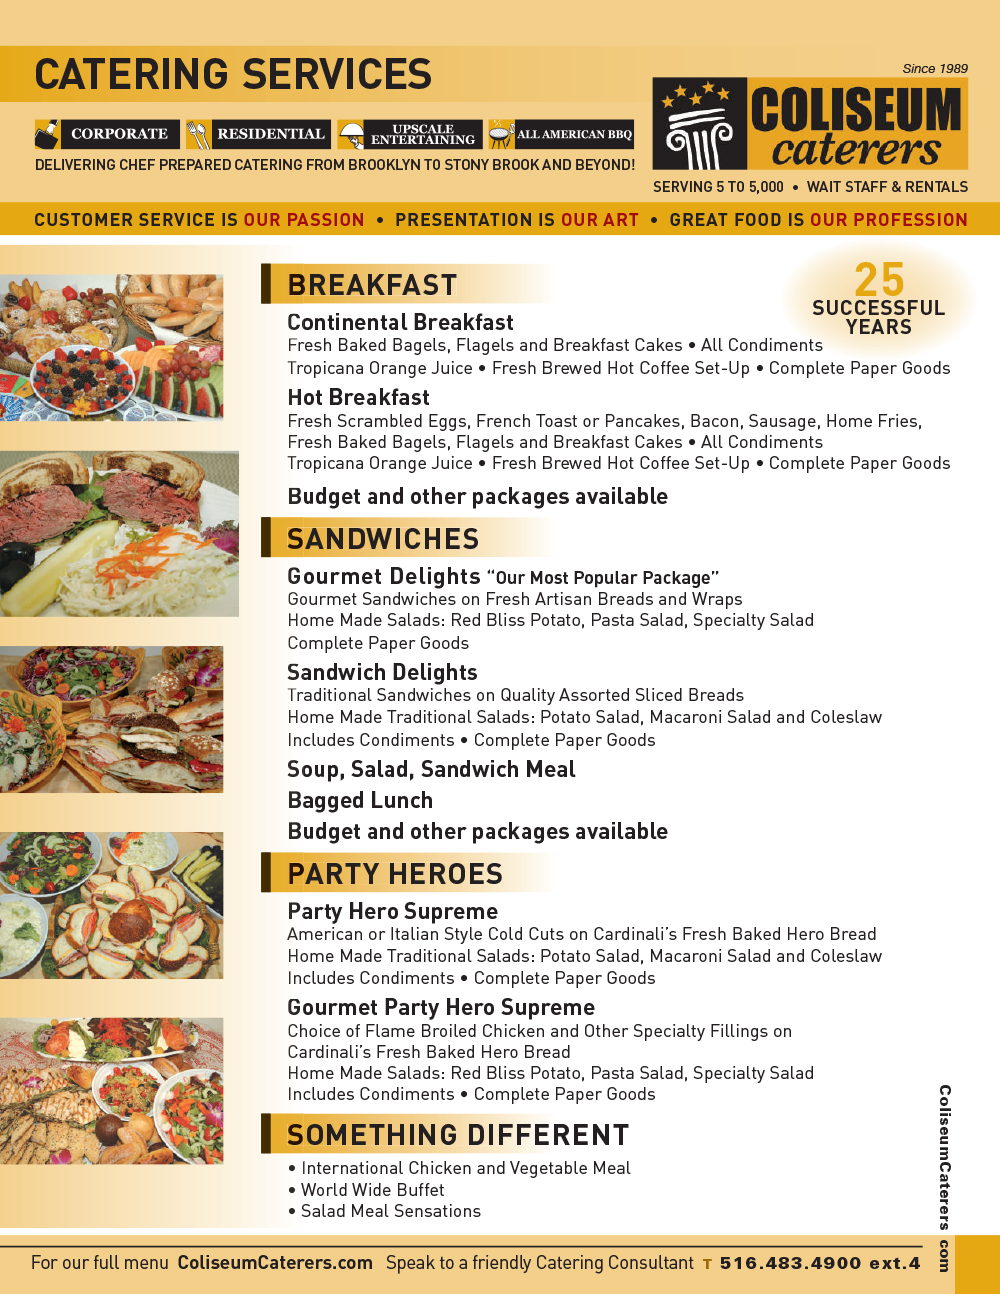 Catering Services | Coliseum Kitchen & Caterers